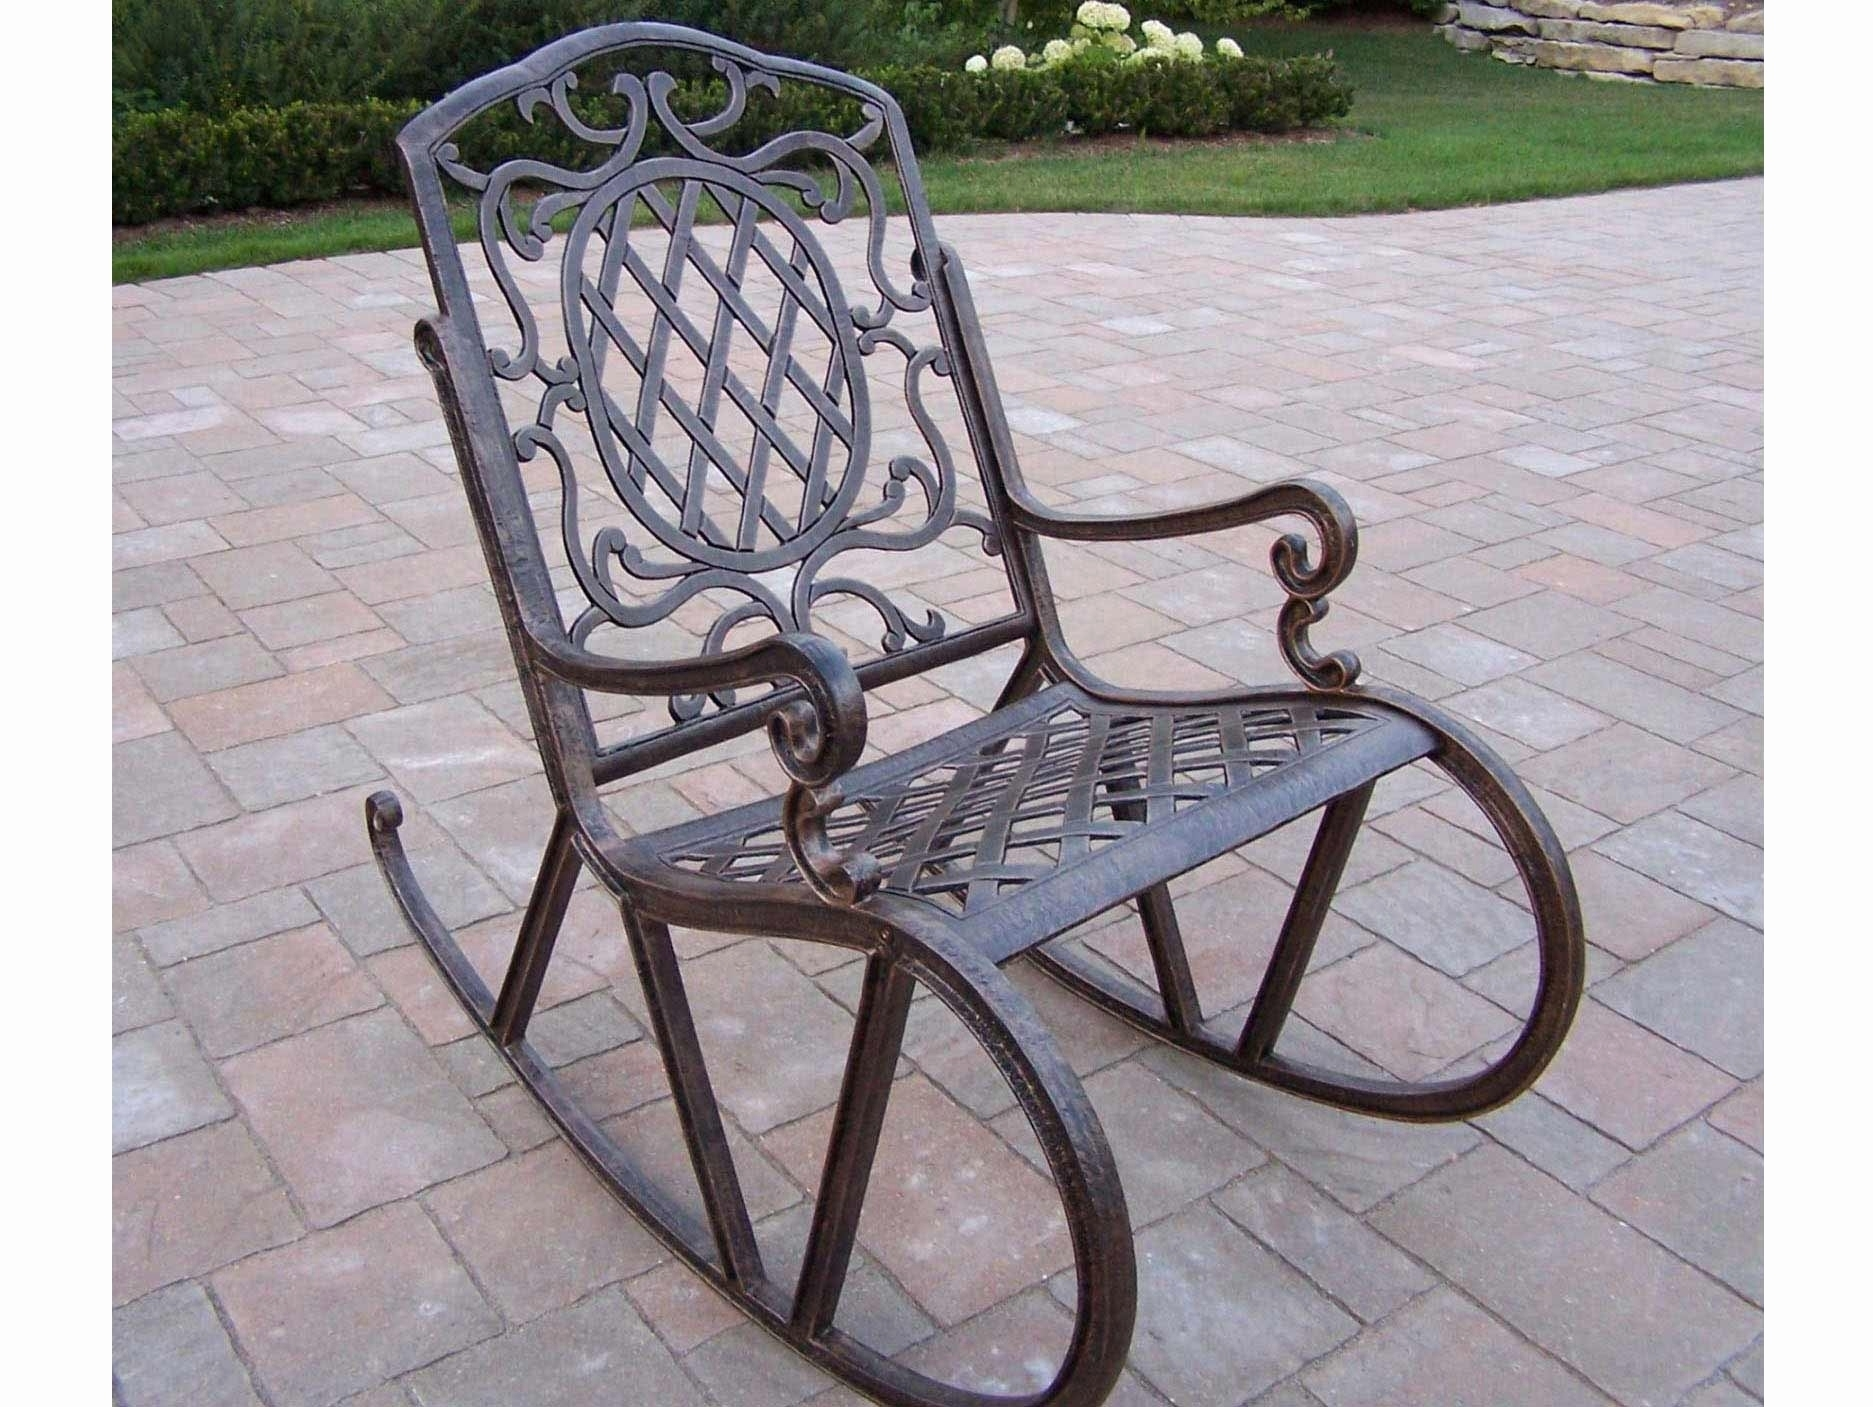 Wrought Iron Patio Furniture Rocking Chairs Ideas Antique Vintage Throughout Iron Rocking Patio Chairs (#14 of 15)